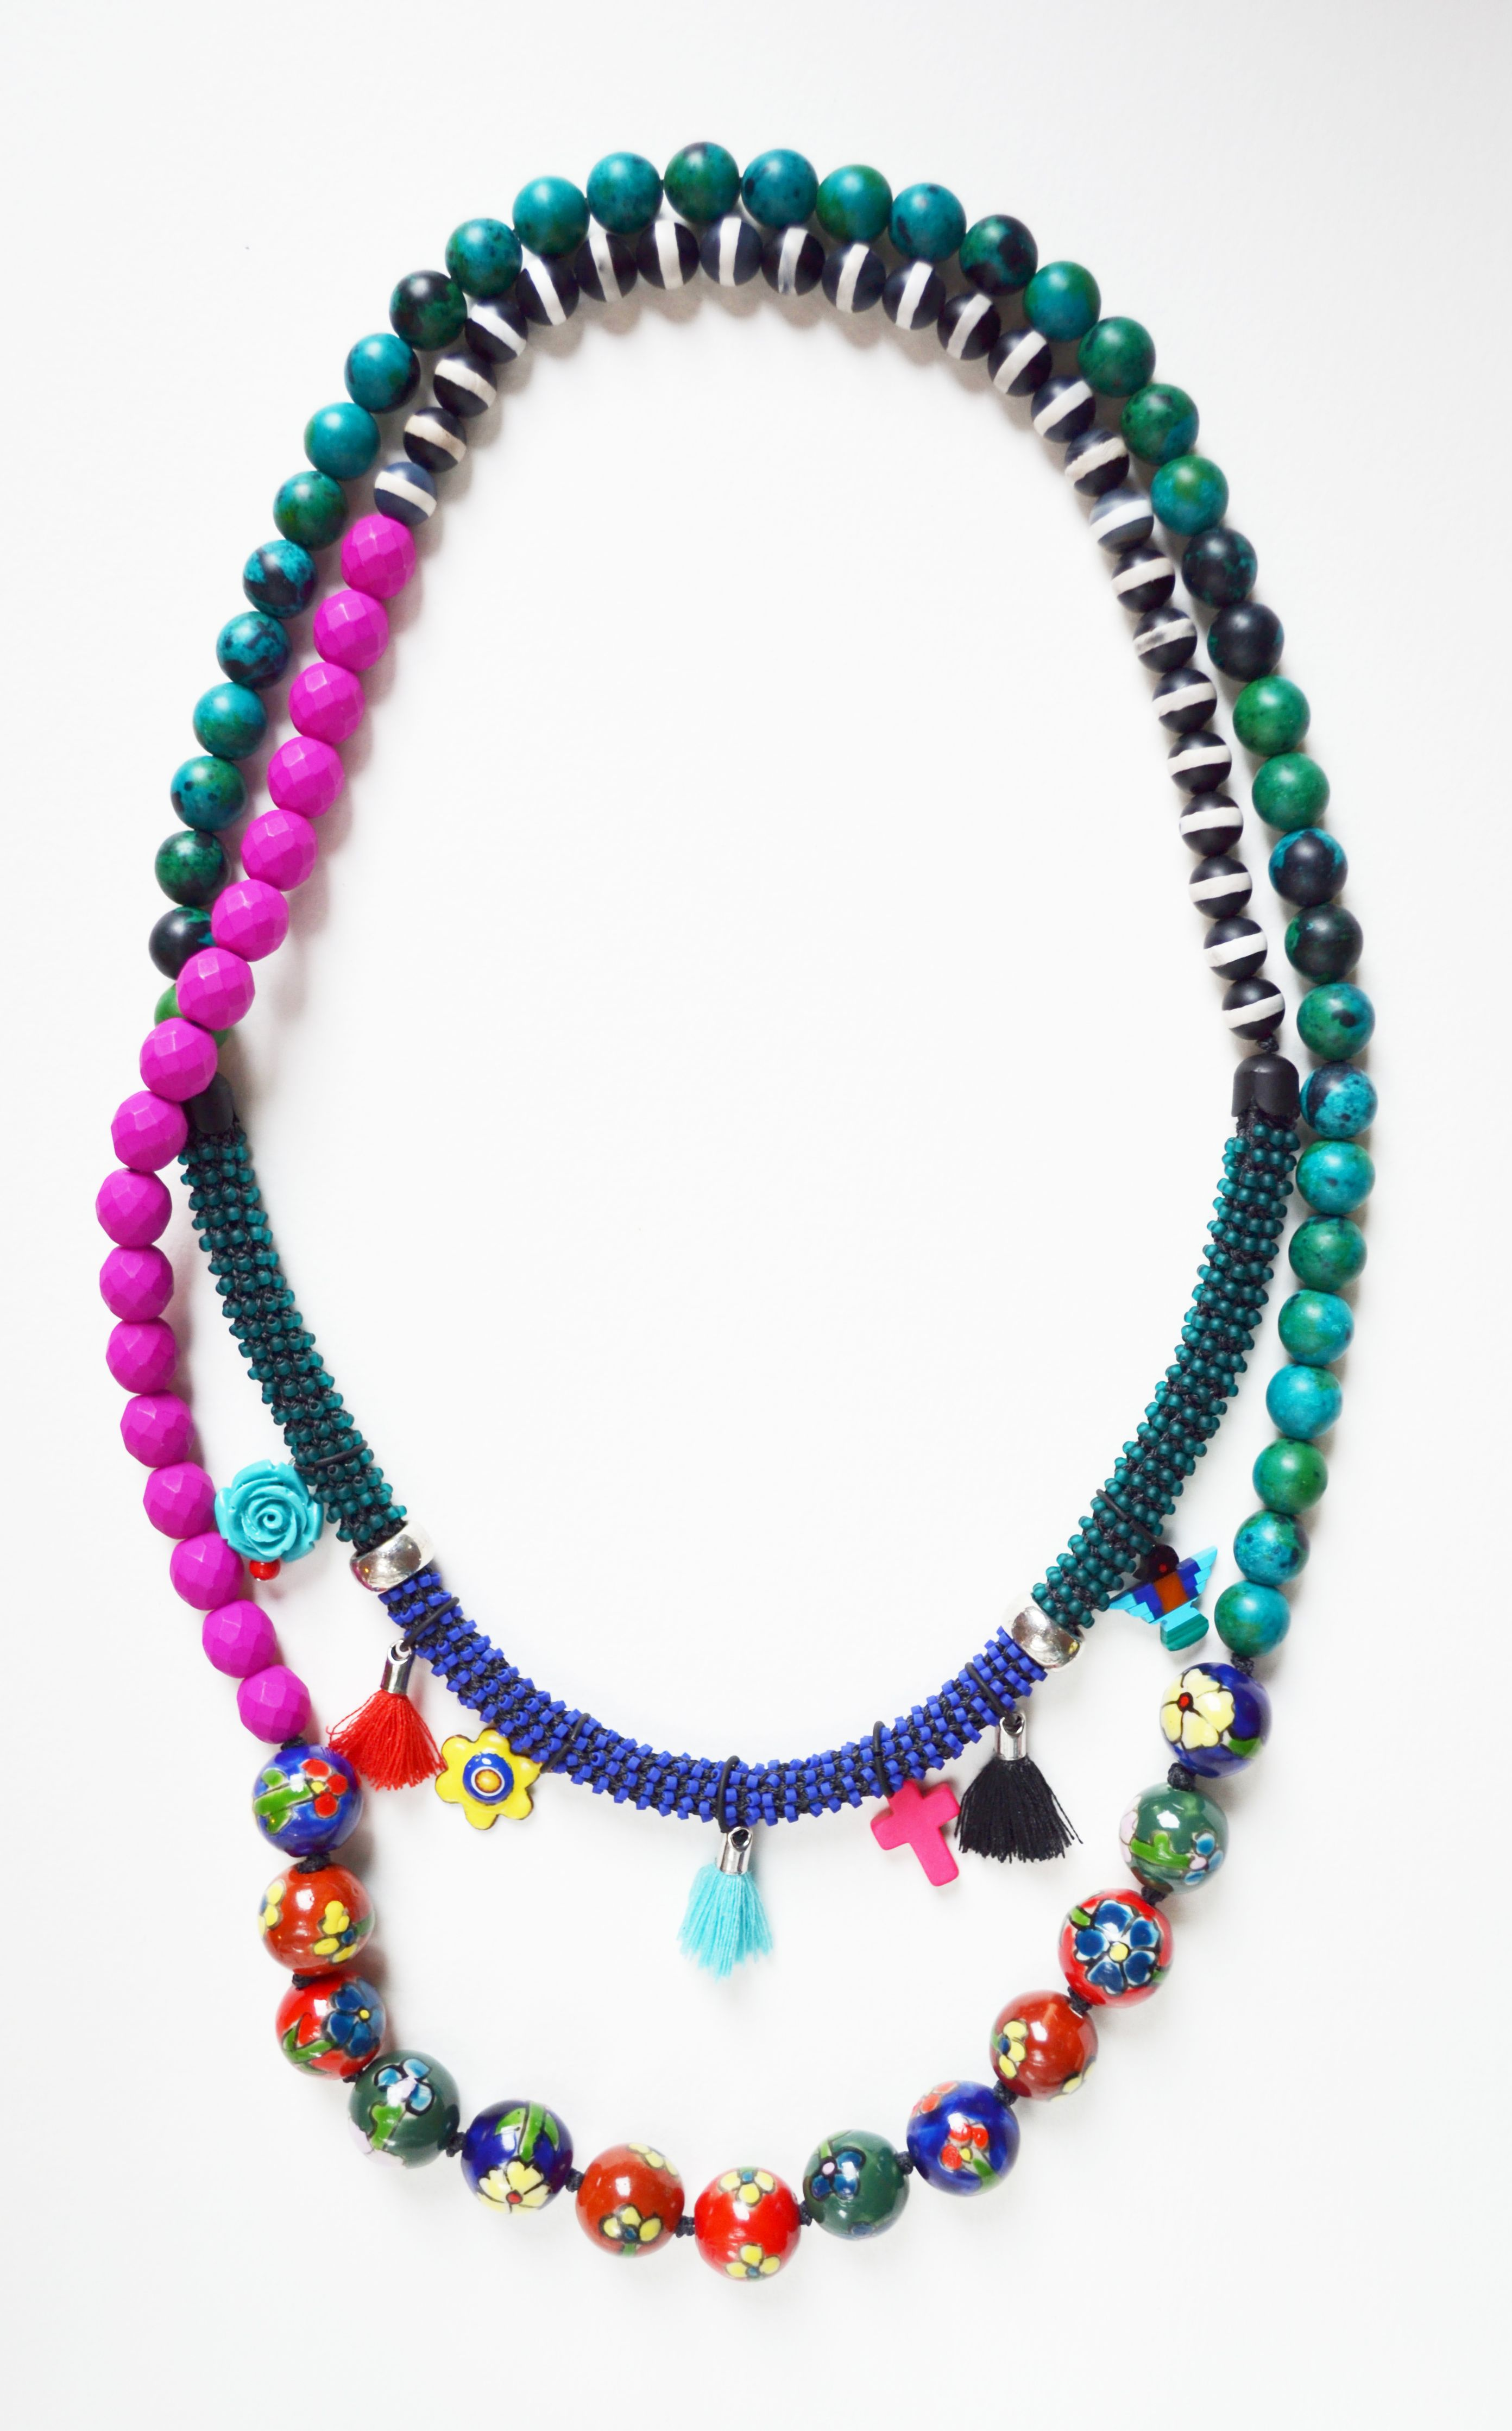 Frida Kahlo Is The Name Of This Necklace Contrast Coloursflowers